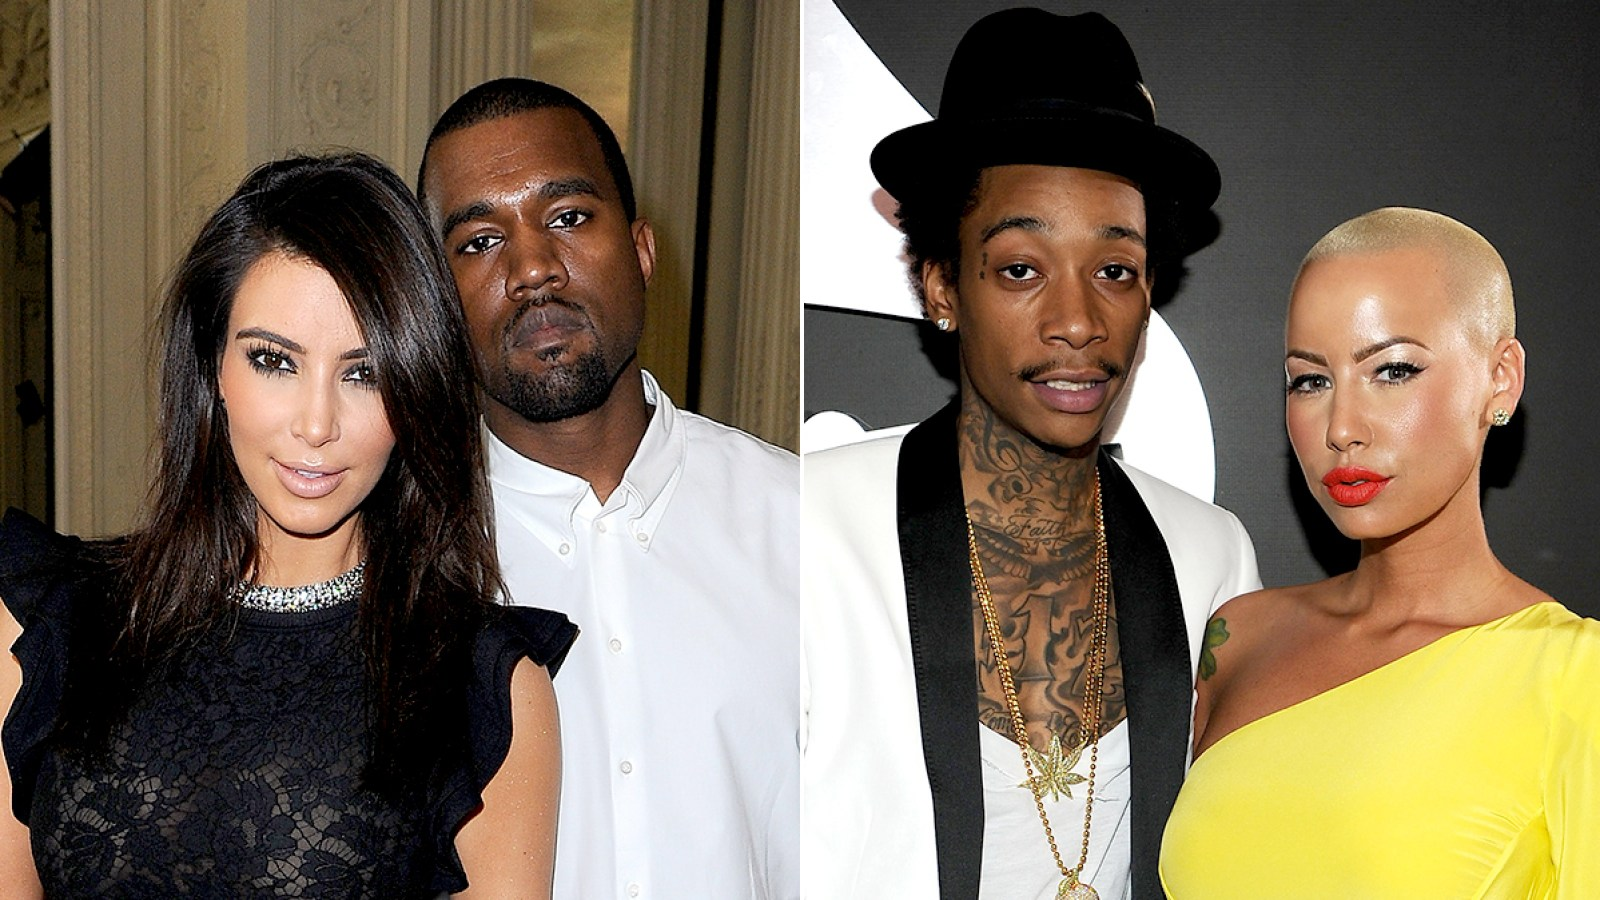 82a3c4159f6 A History of Kanye West s and the Kardashians  Feuds With Amber Rose